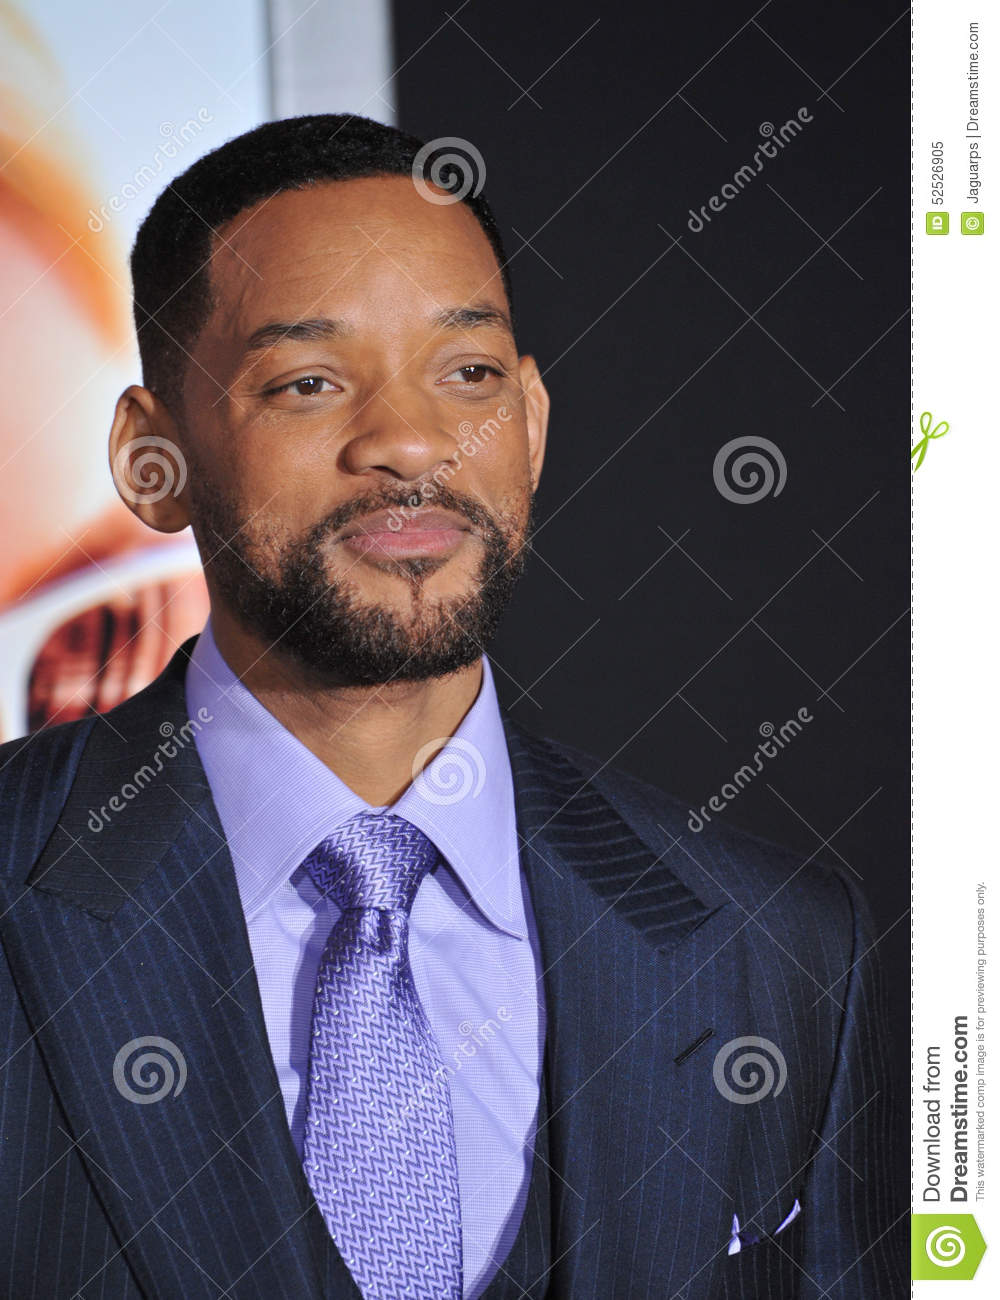 focus will smith movie download